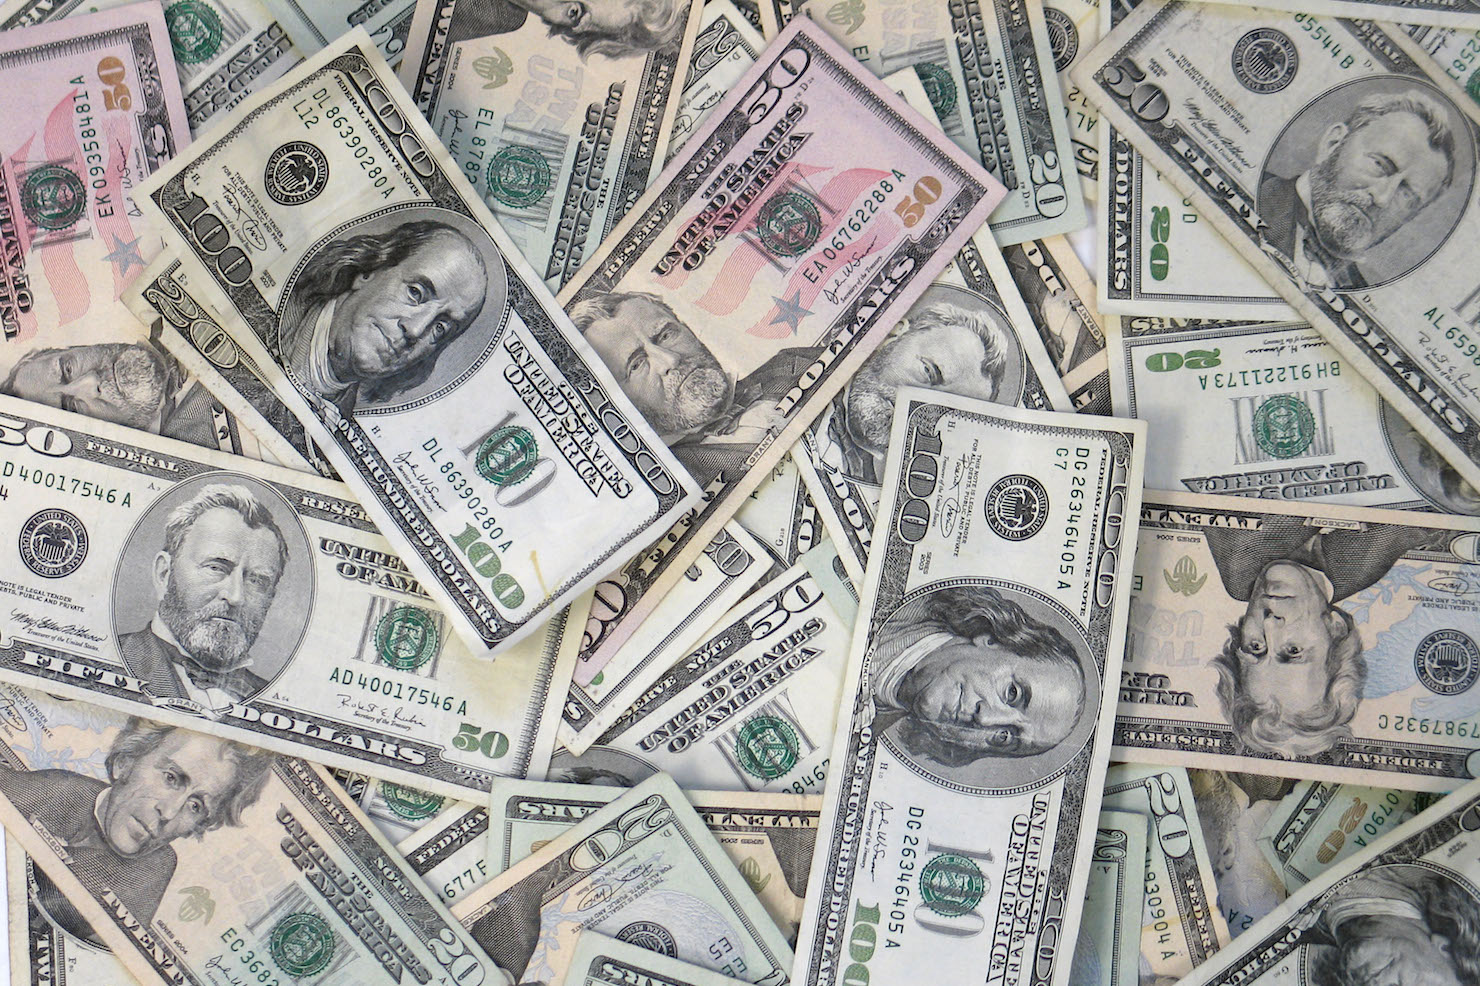 Pile of money stock image